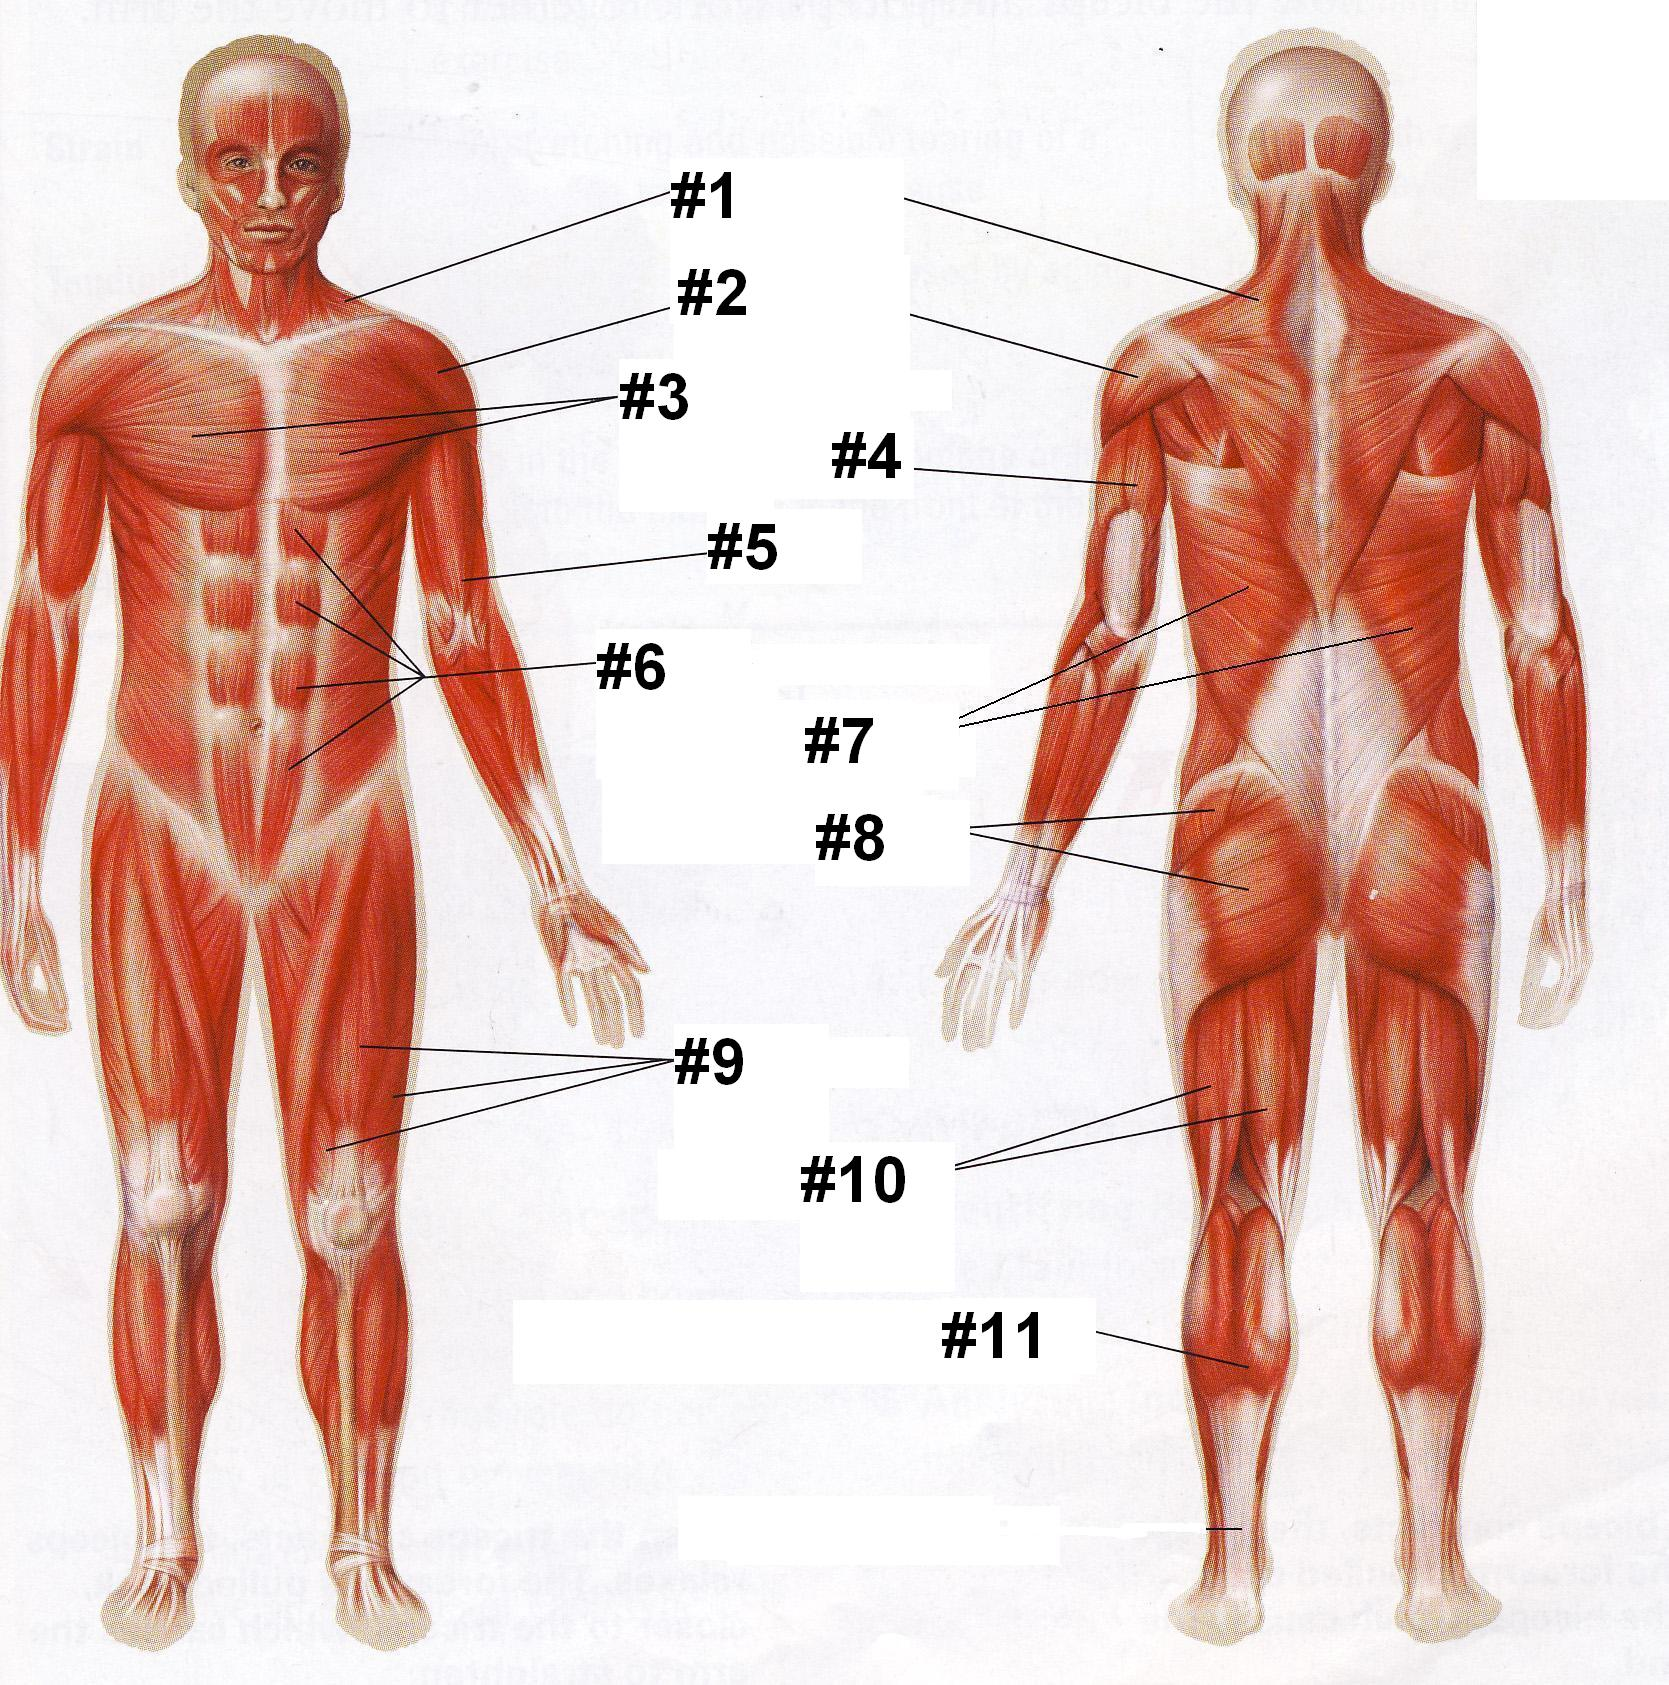 muscle quiz - proprofs quiz, Muscles